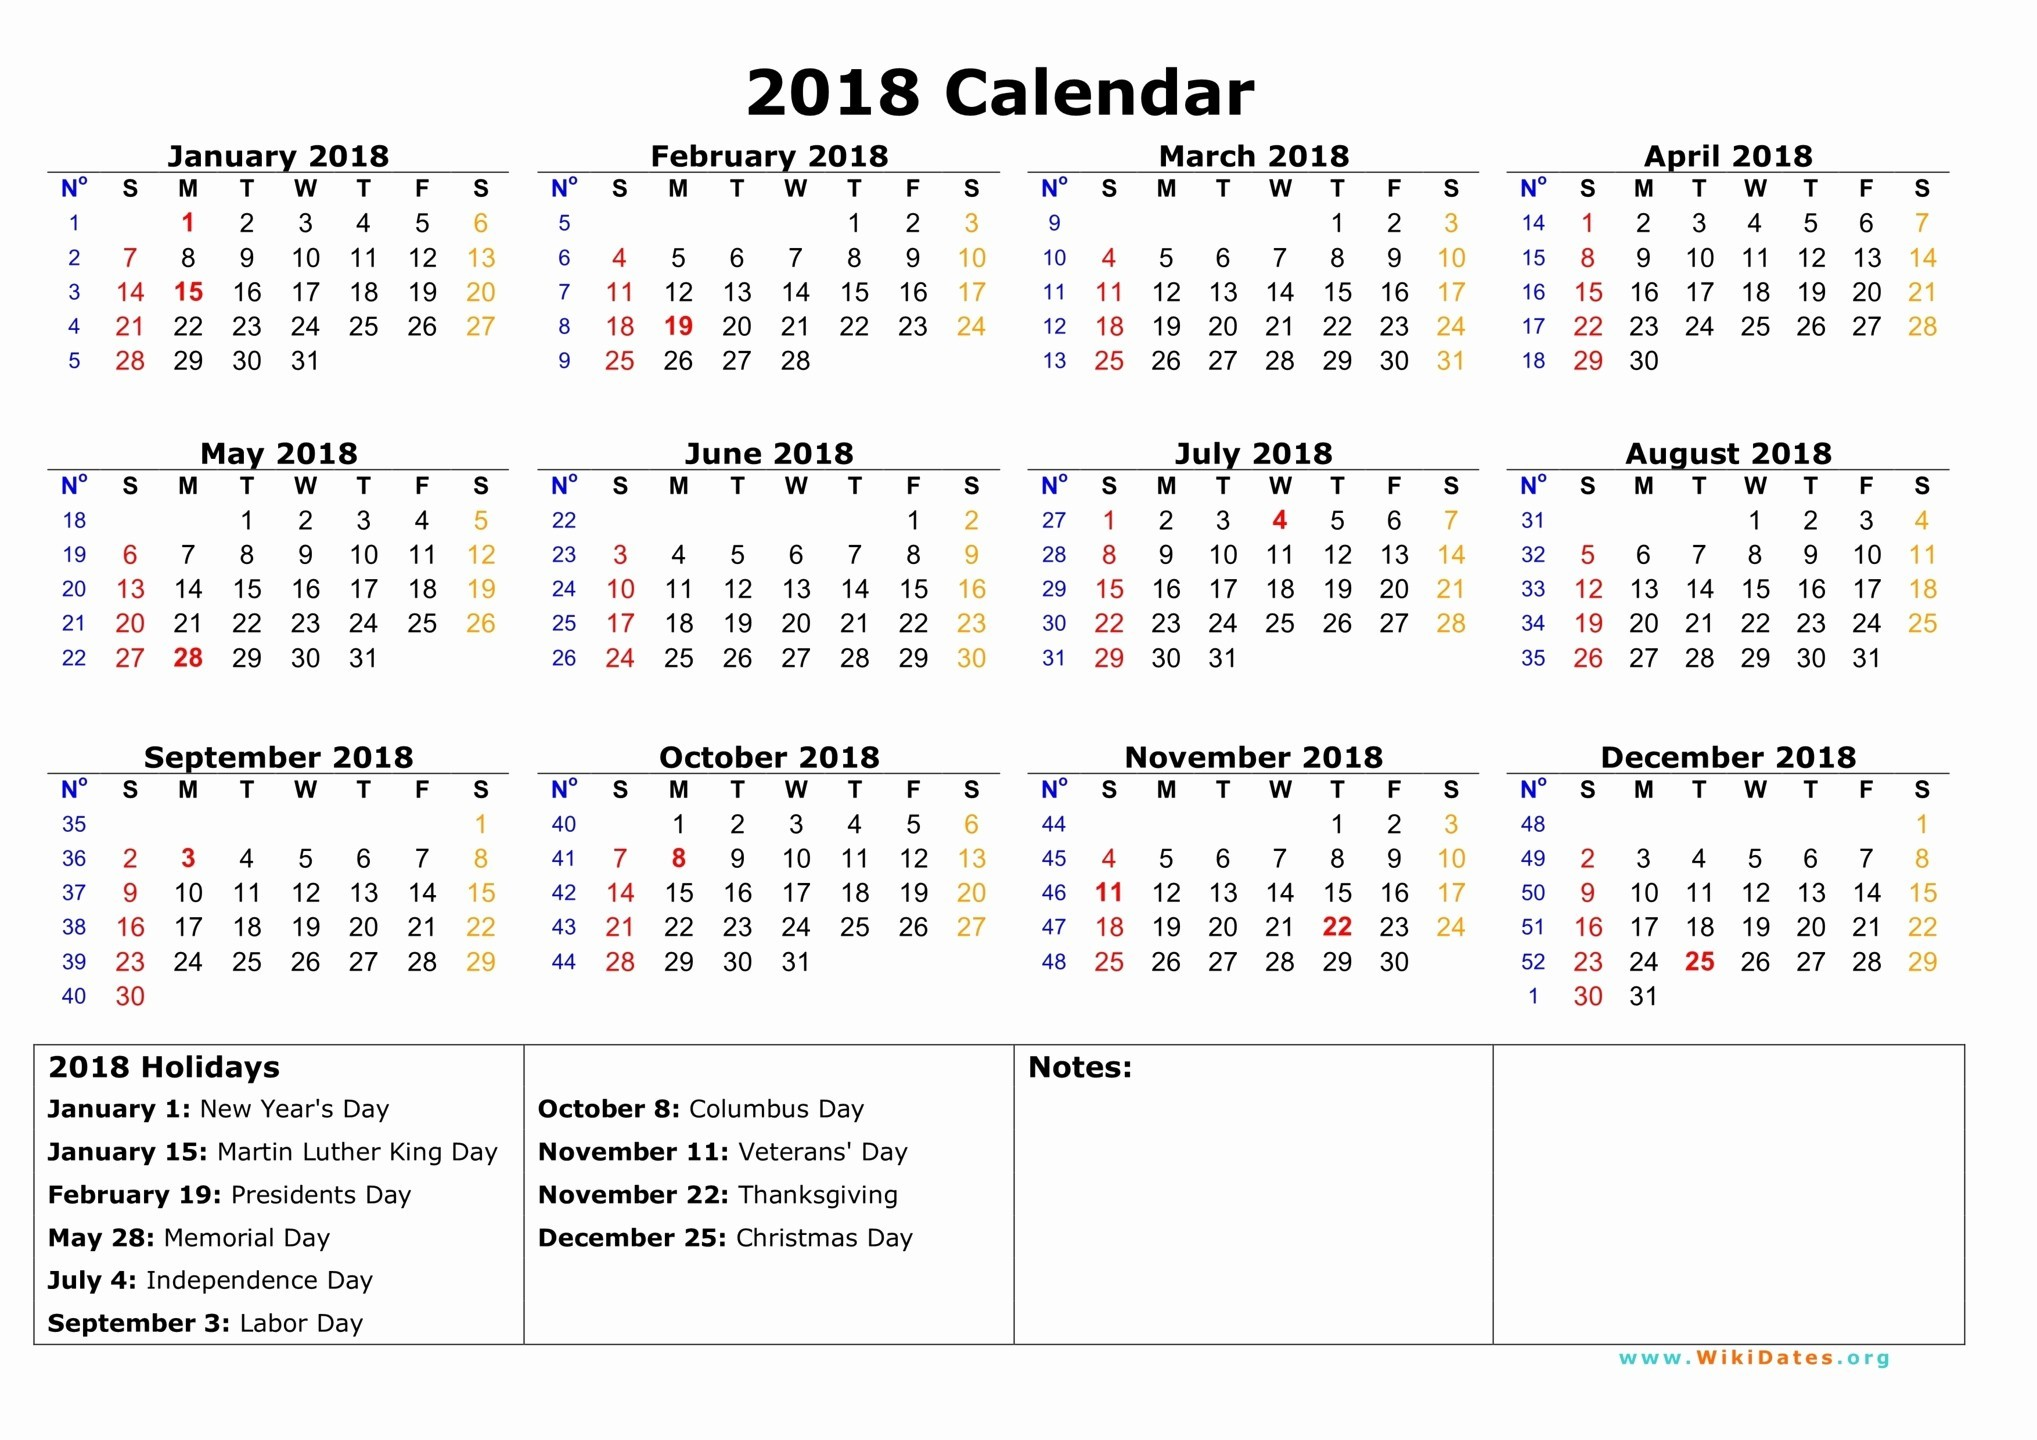 Calendario 2019 Vector Gratis Actual Advice Regarding Calendar 2019 Chinese New Year Calendar Online 2019 Of Calendario 2019 Vector Gratis Más Recientes Advice Regarding Calendar 2019 Chinese New Year Calendar Online 2019